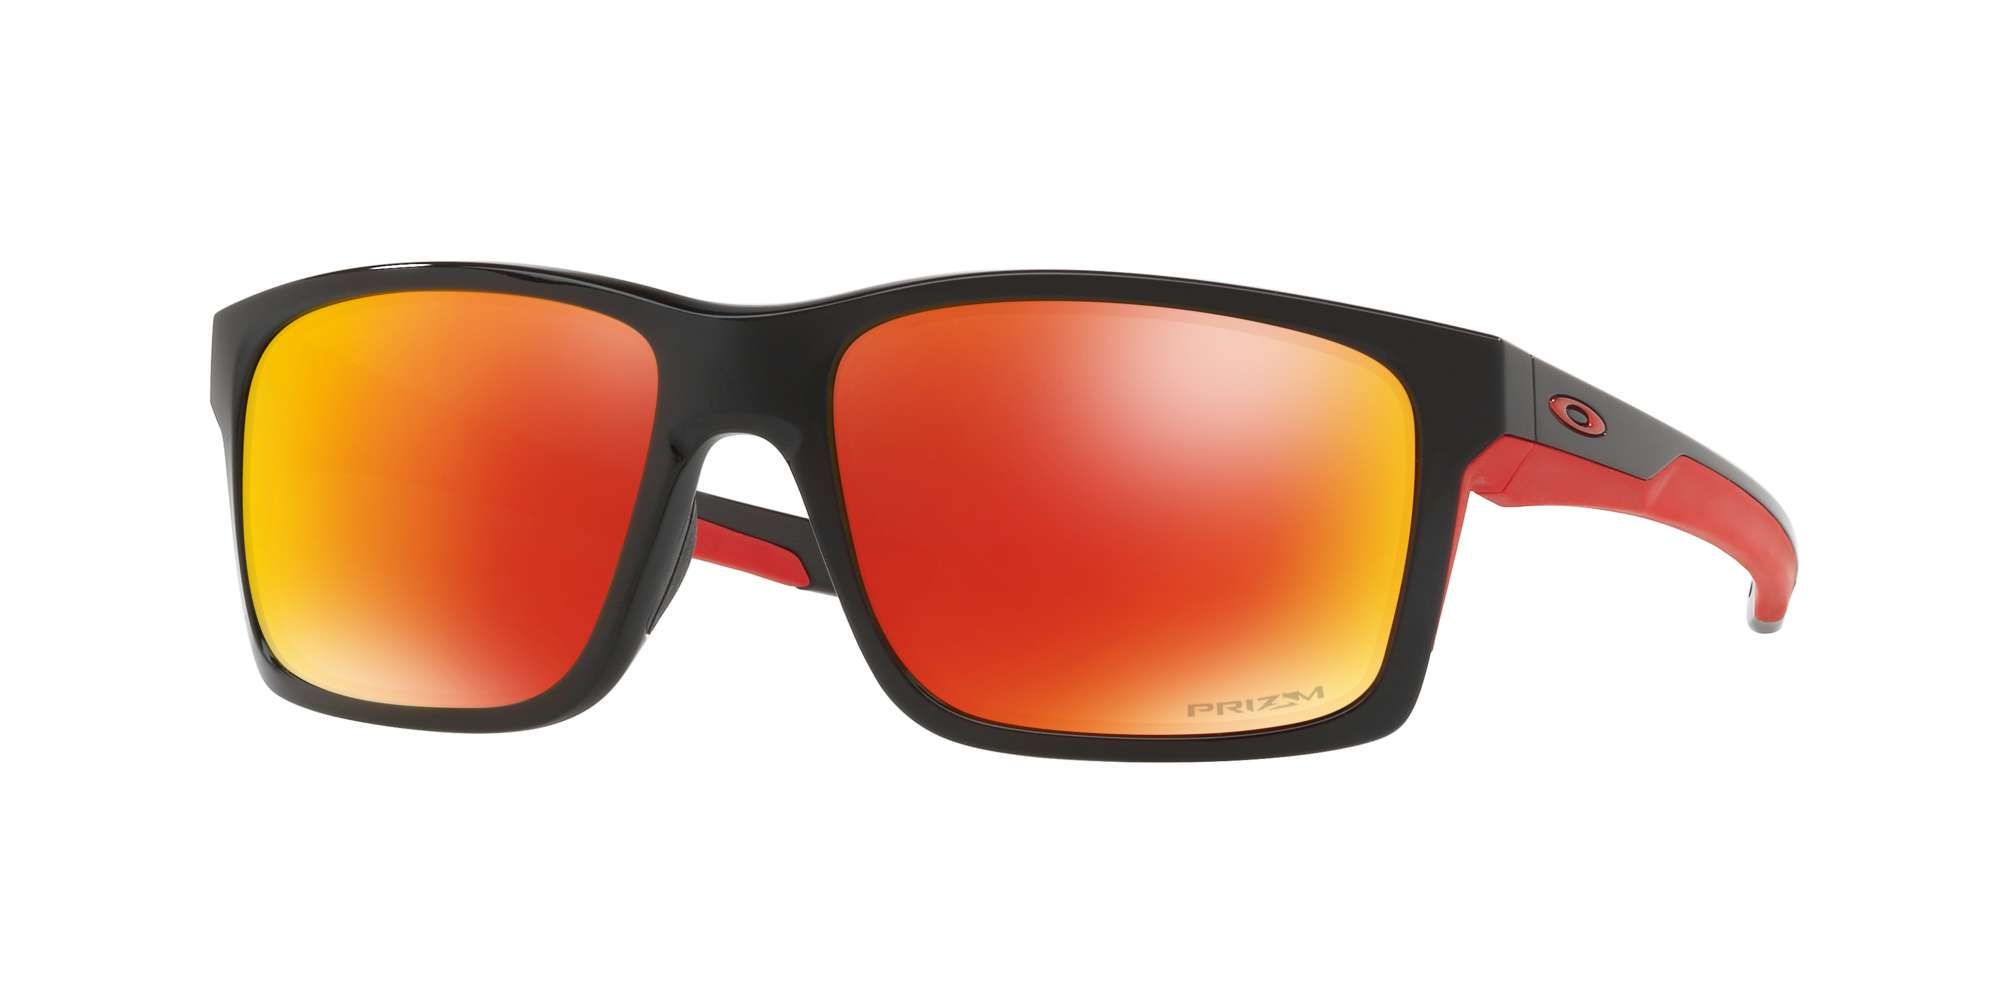 POLISHED BLACK / PRIZM RUBY POLARIZED lenses